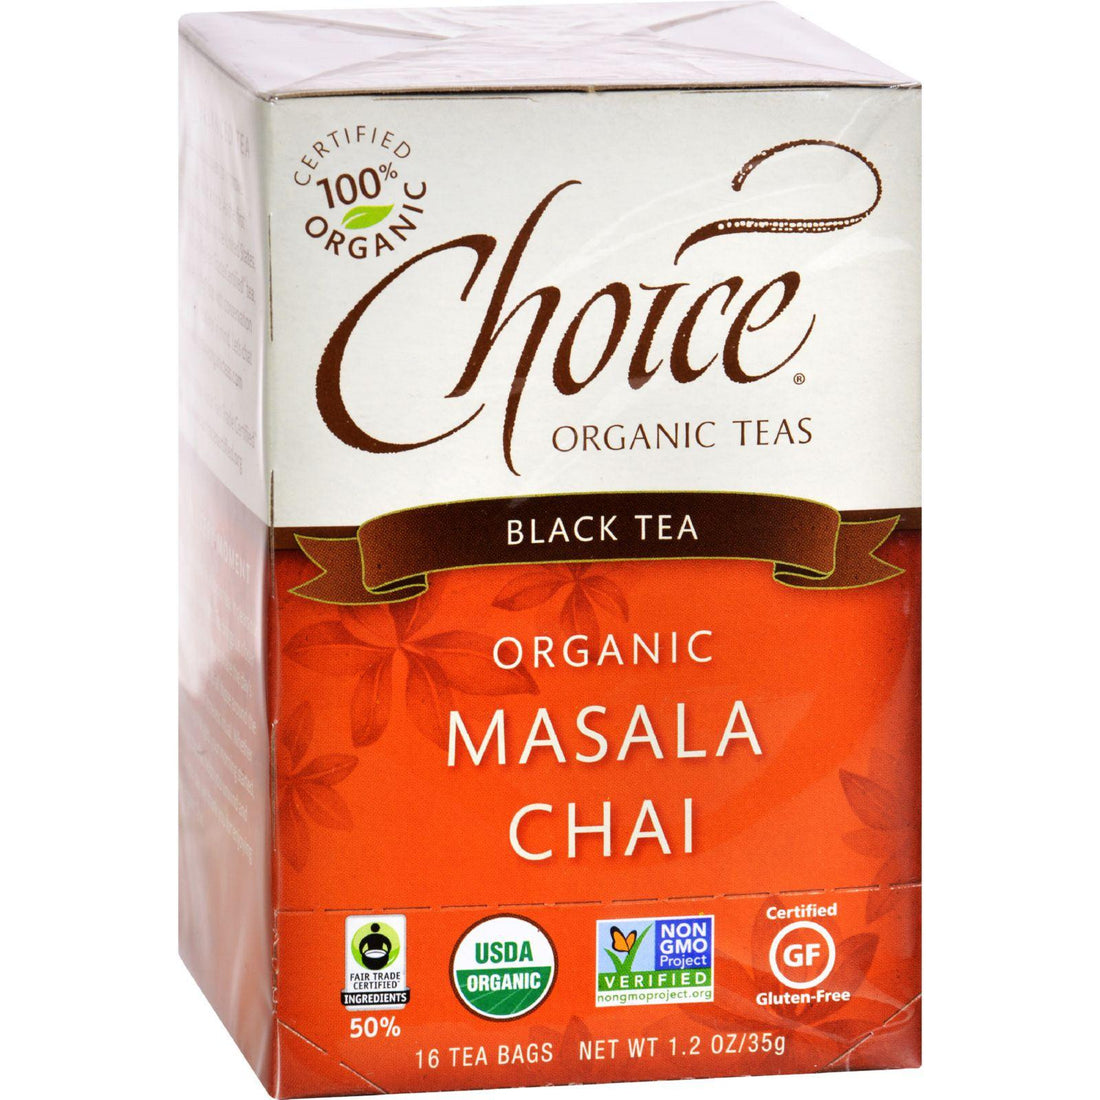 Mother Mantis: Choice Organic Teas Black Tea Masala Chai - Case Of 6 - 16 Bags Choice Organic Teas